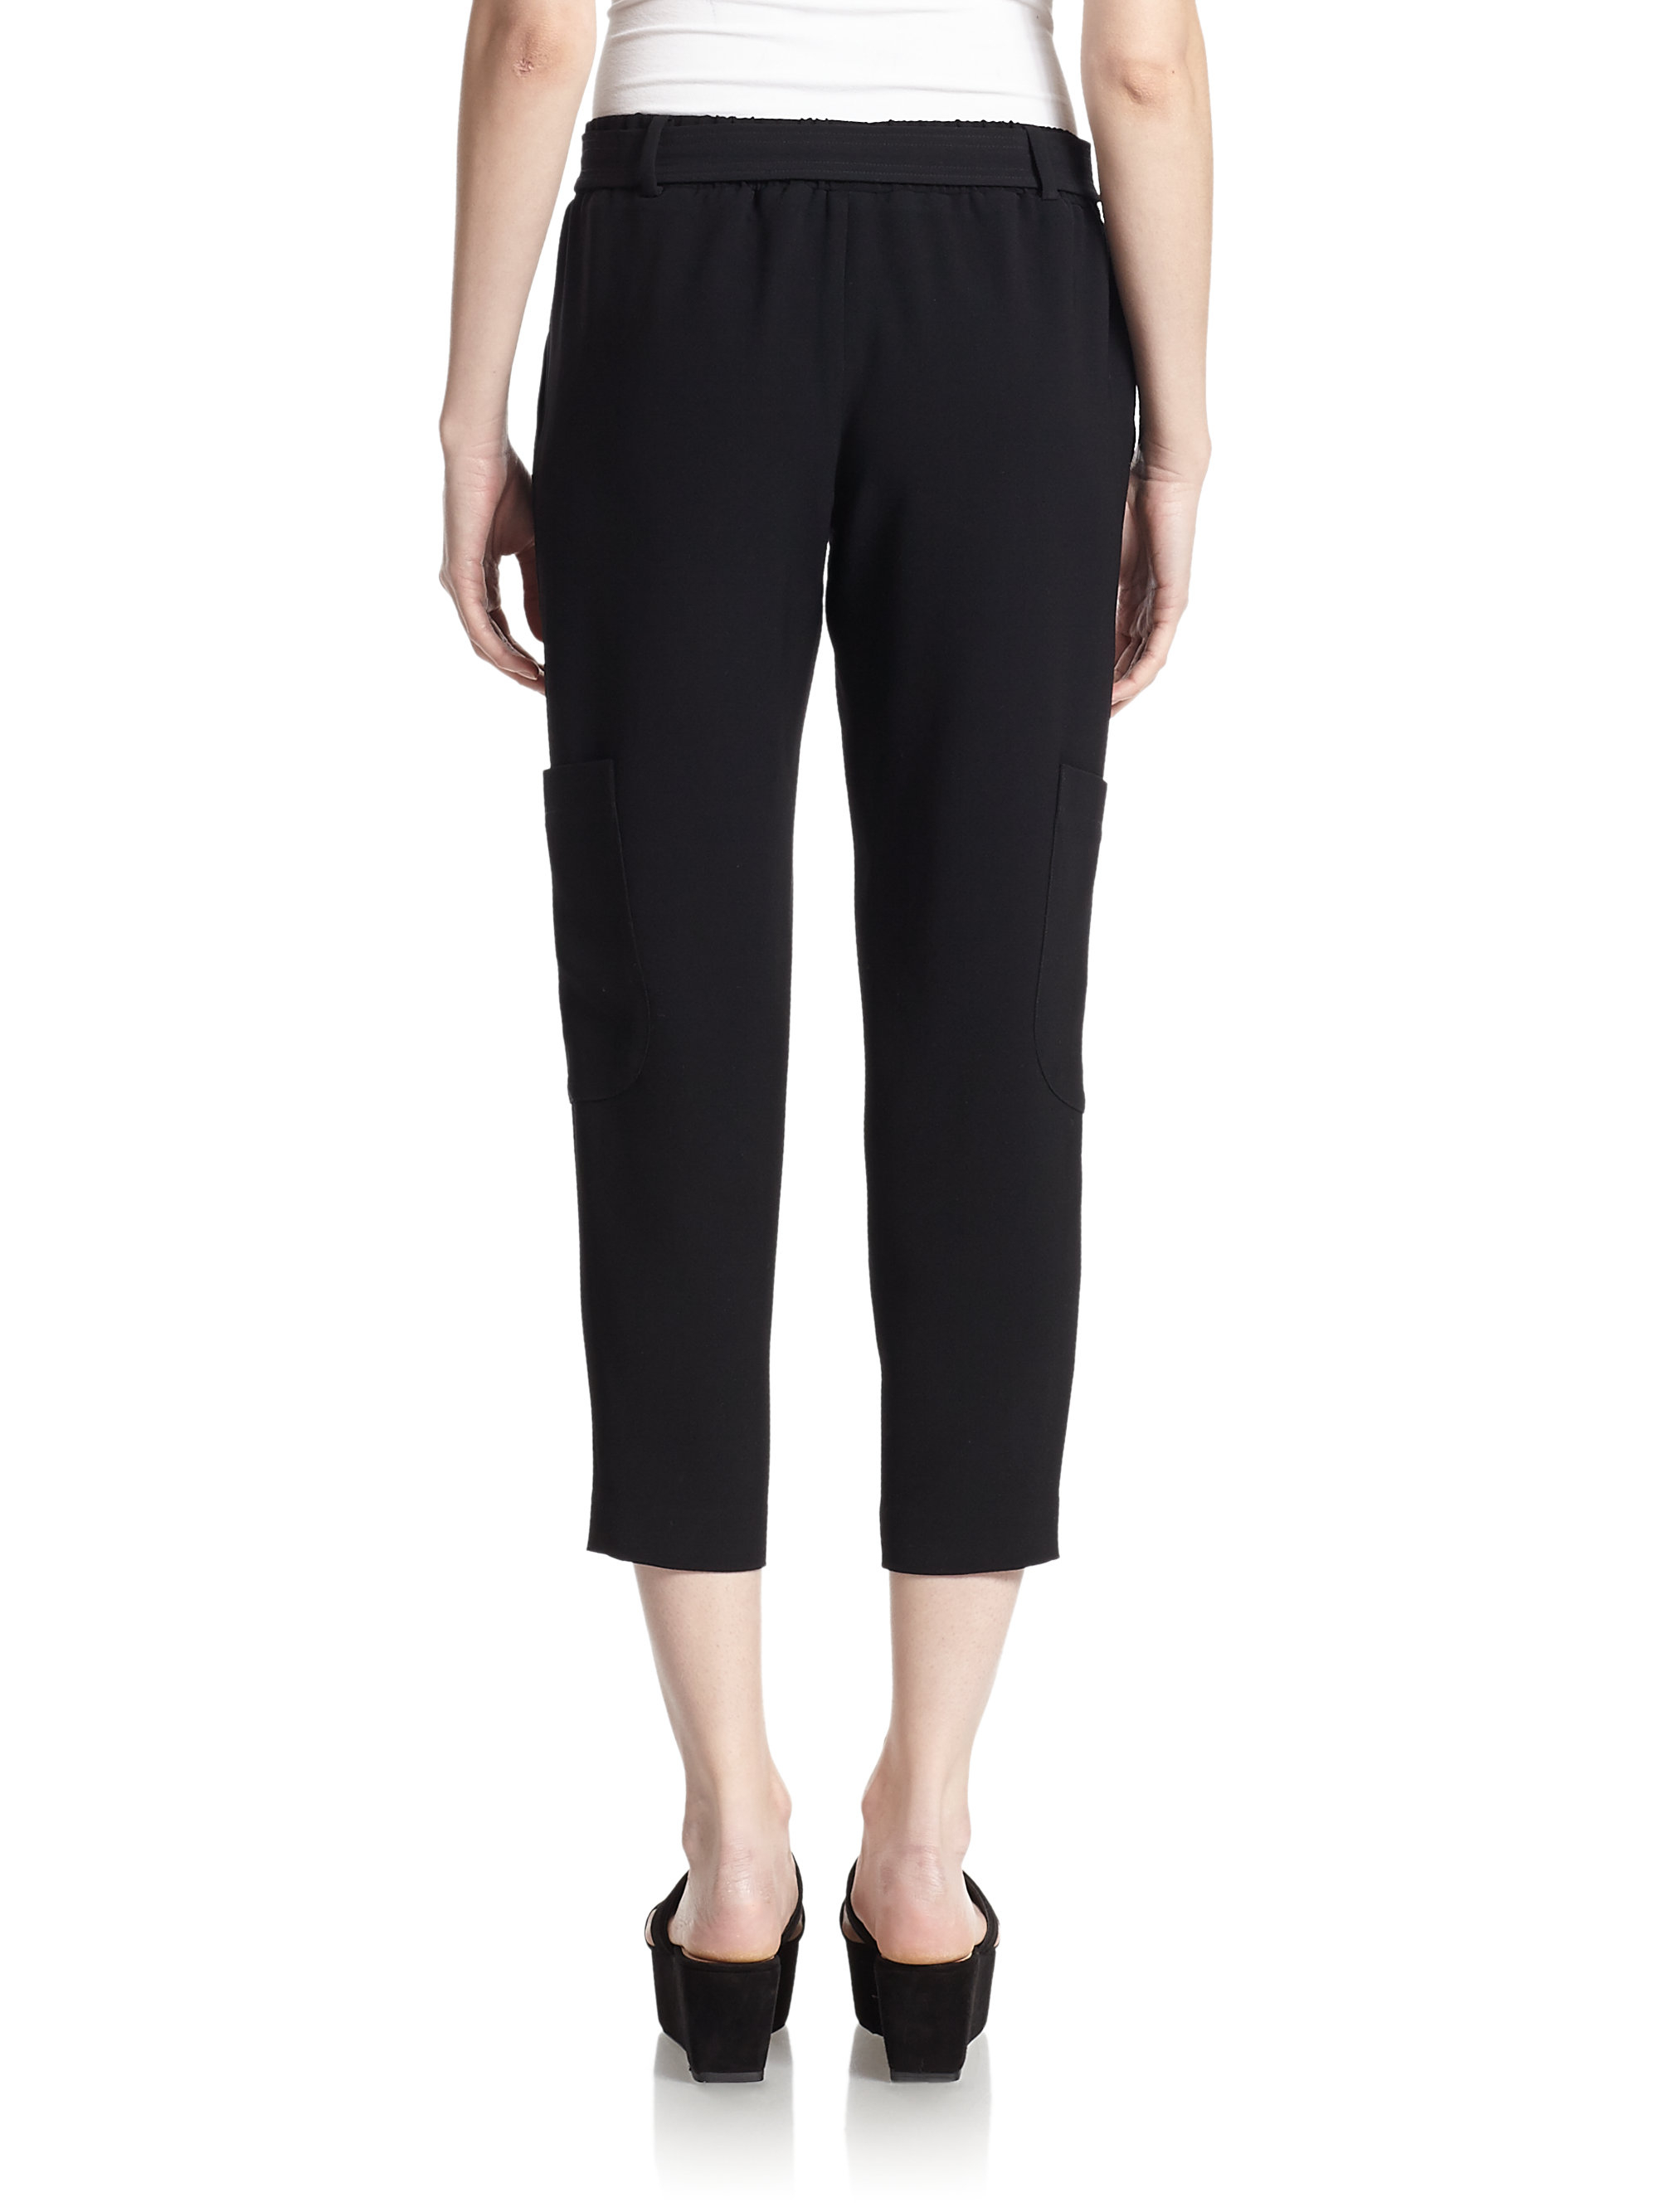 New Women With Control Regular Cropped Cargo Pants  Page 1  QVCcom